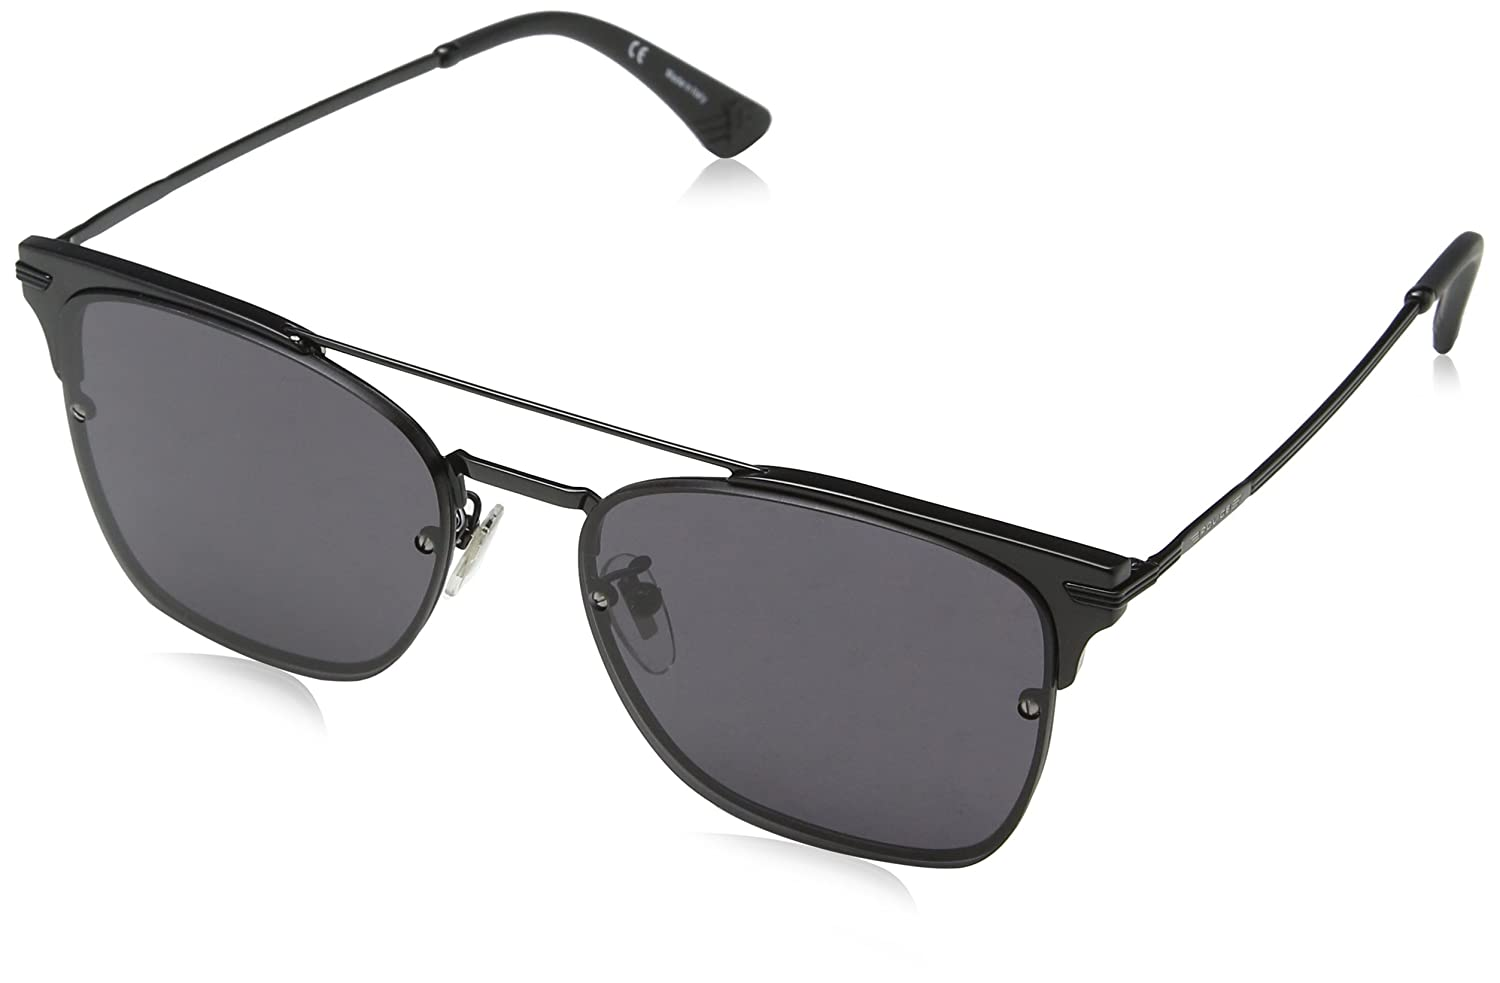 Police Highway Two 3 Gafas de sol, Negro (Shiny Black), 56 ...